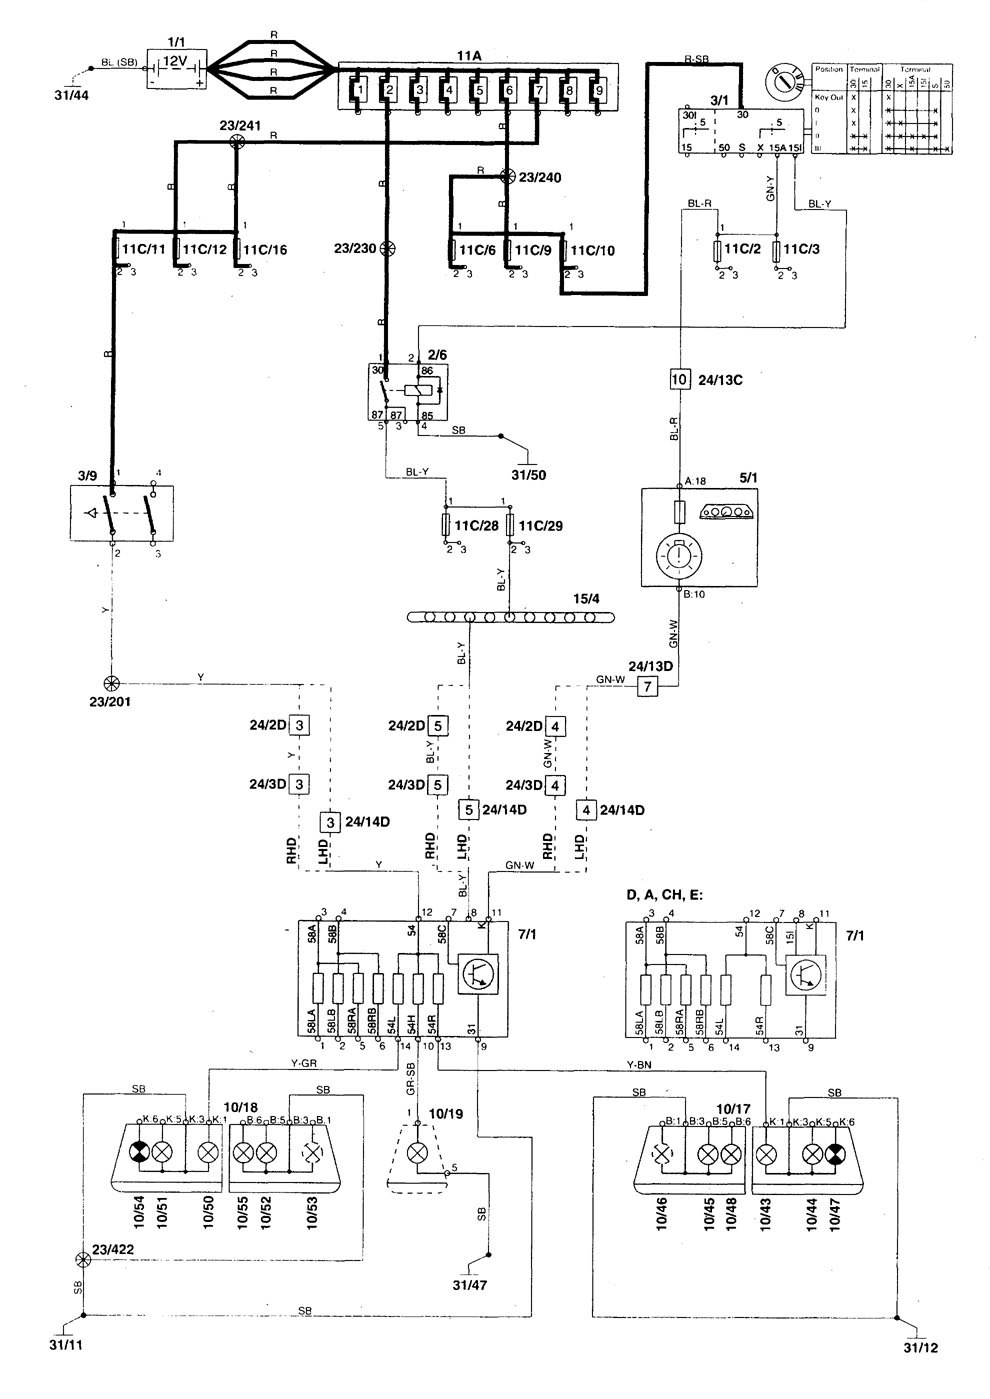 1999 Volvo S80 Fuse Box Diagram Wiring Library 2000 S70 Trusted S40